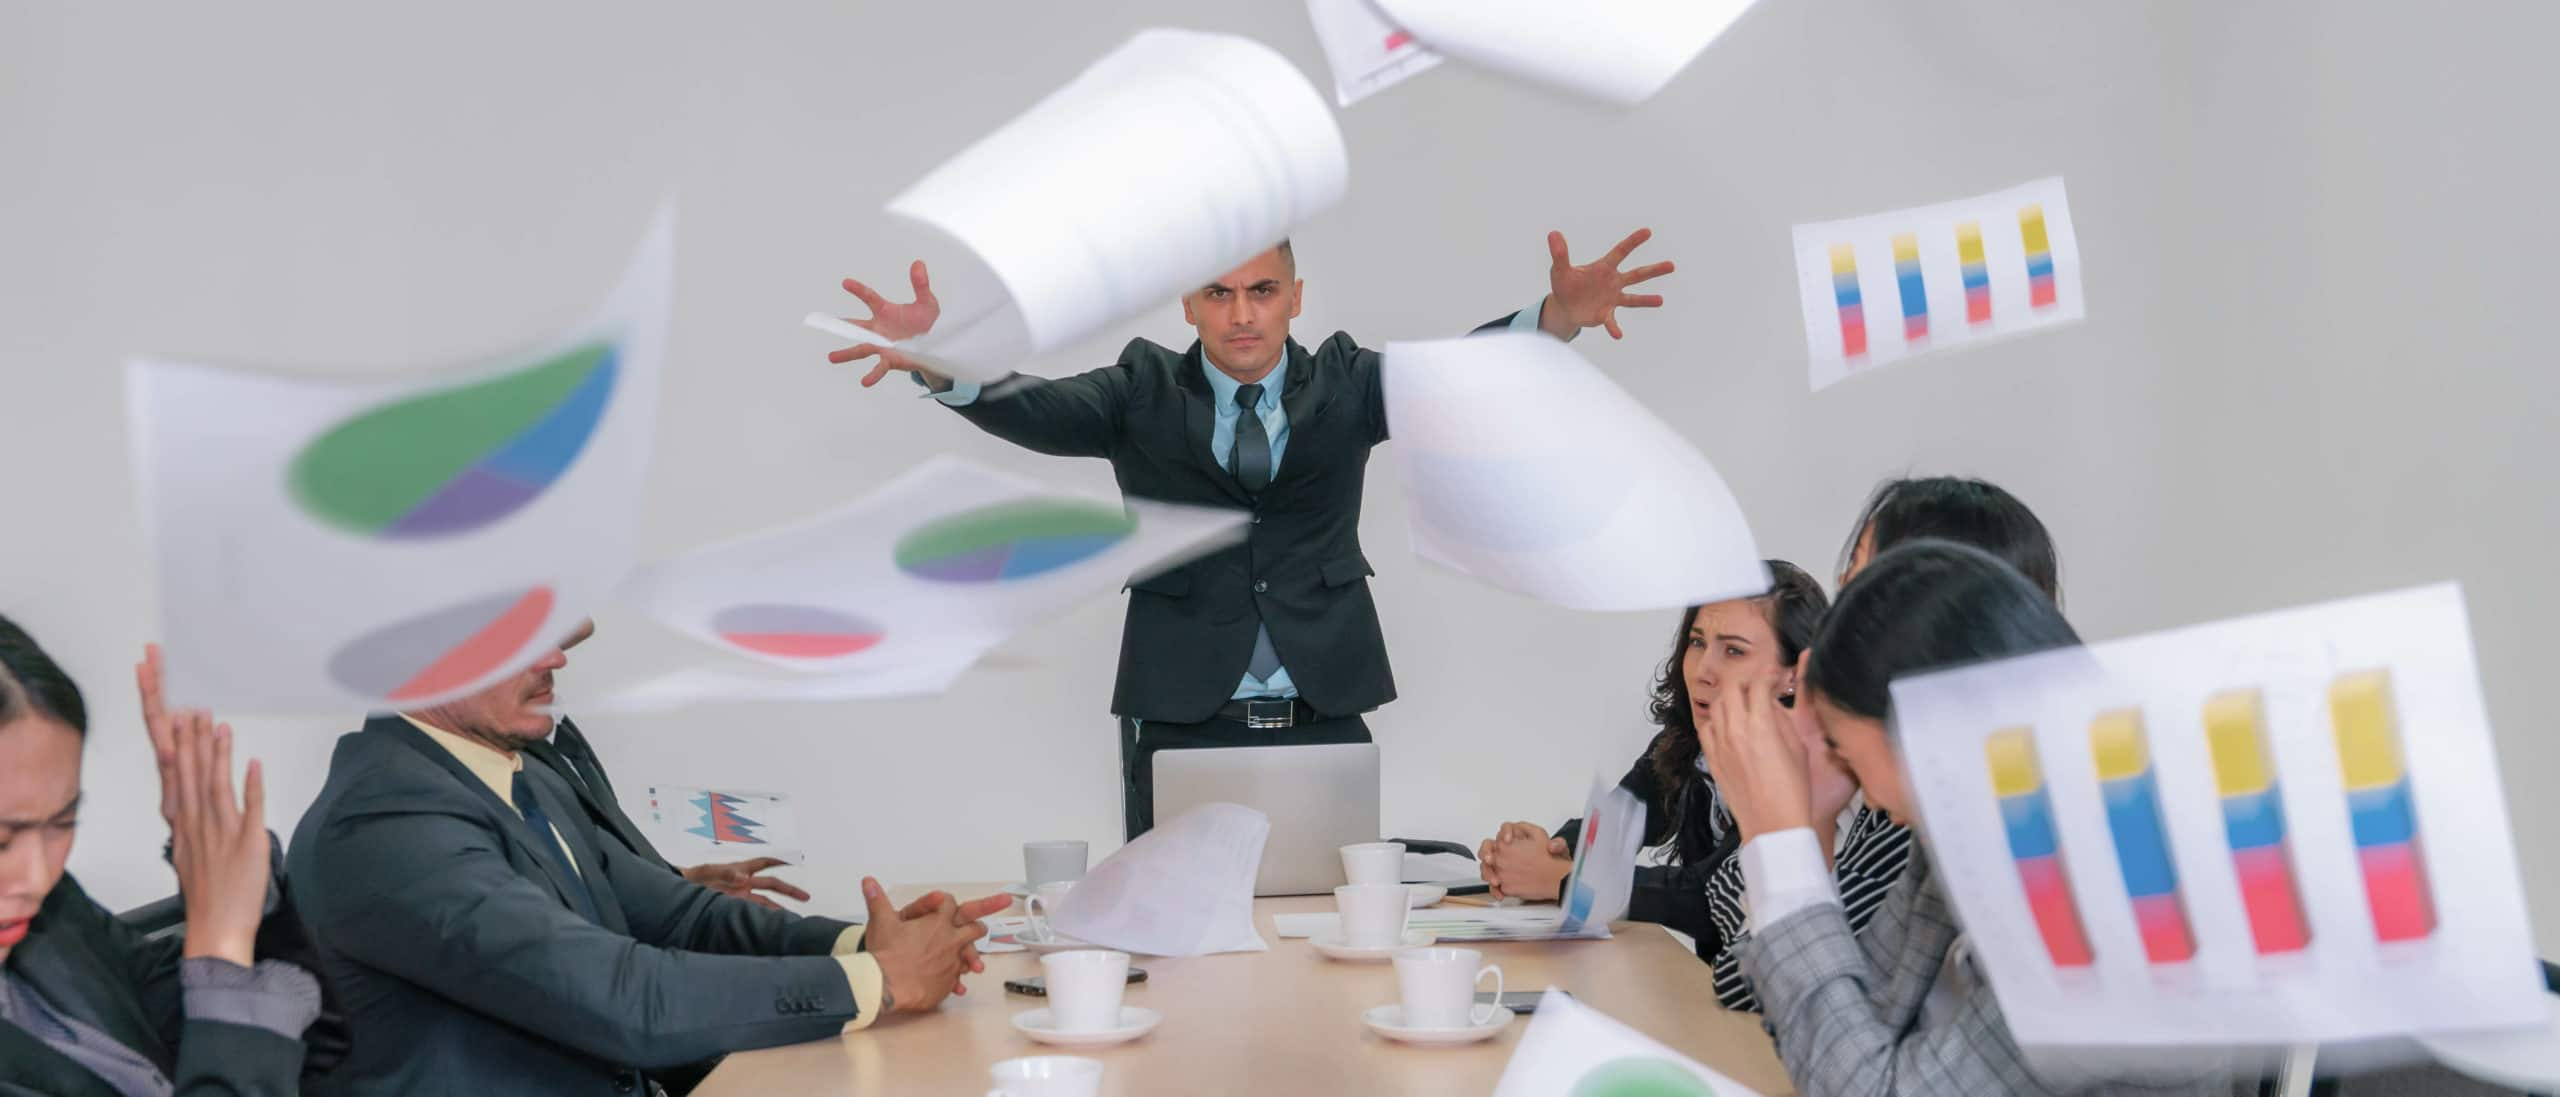 business background of angry management show anger mood by throwing paper to businesspeople in meeting room